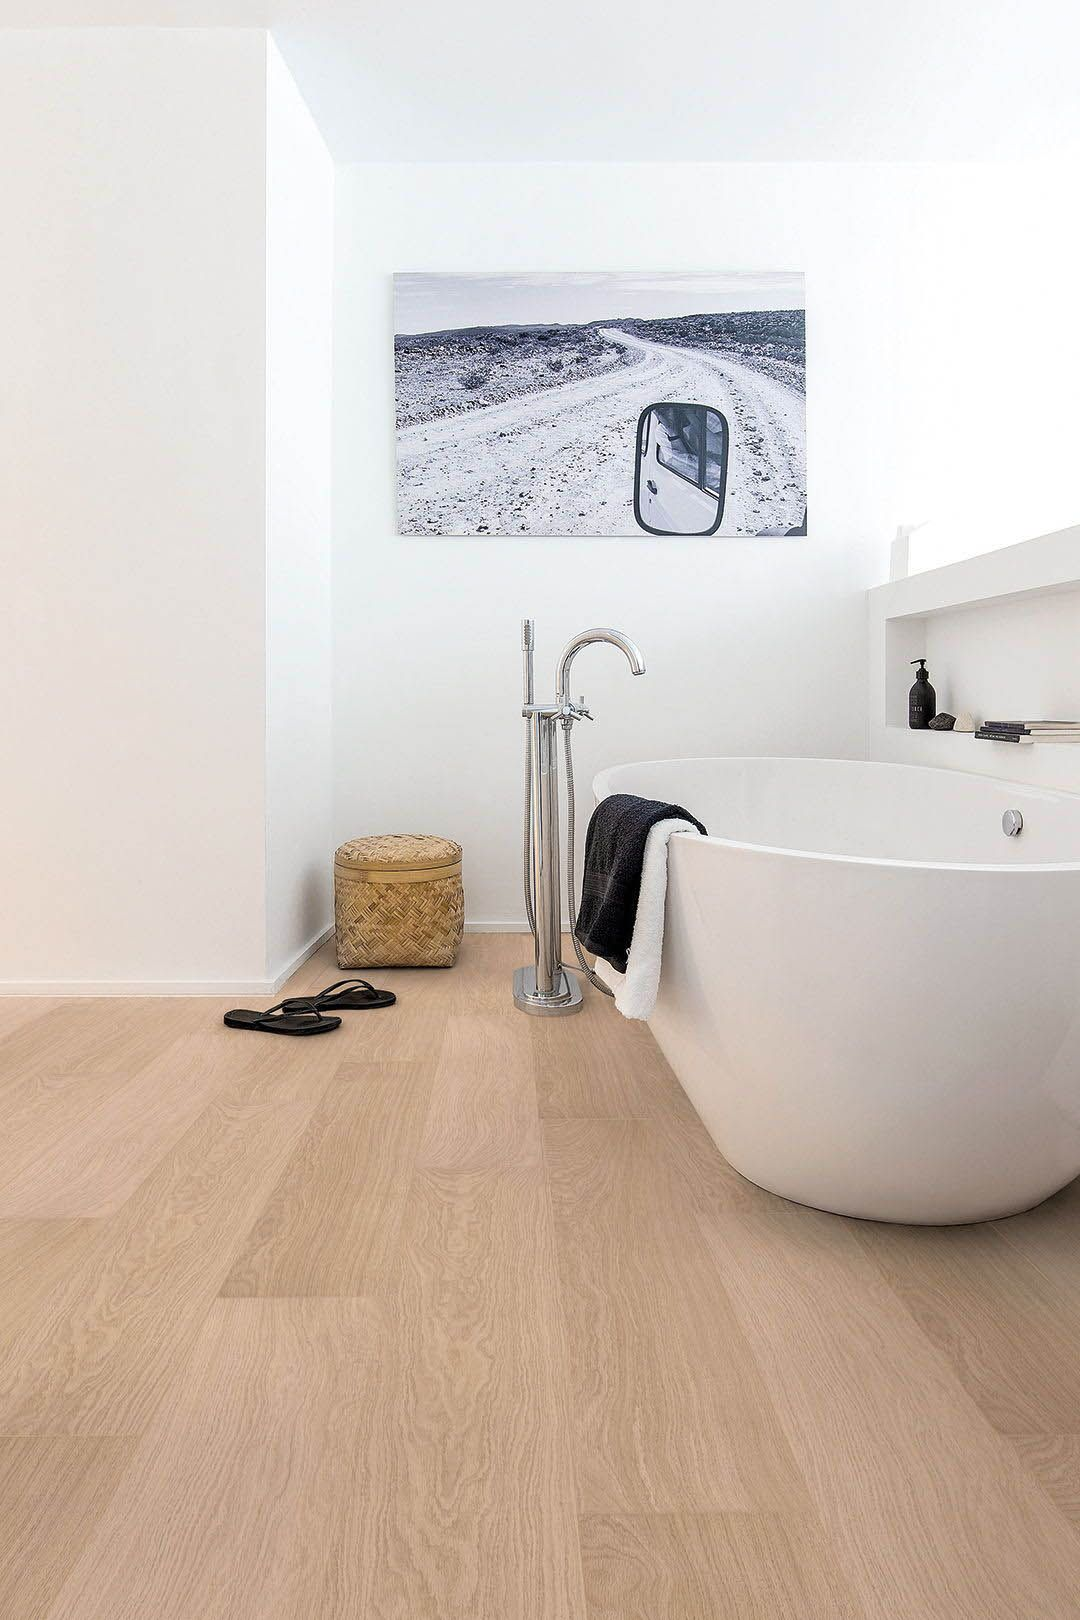 Laminate Flooring Is There A Waterproof Option Waterproof Bathroom Flooring Waterproof Laminate Flooring Wood Floor Bathroom